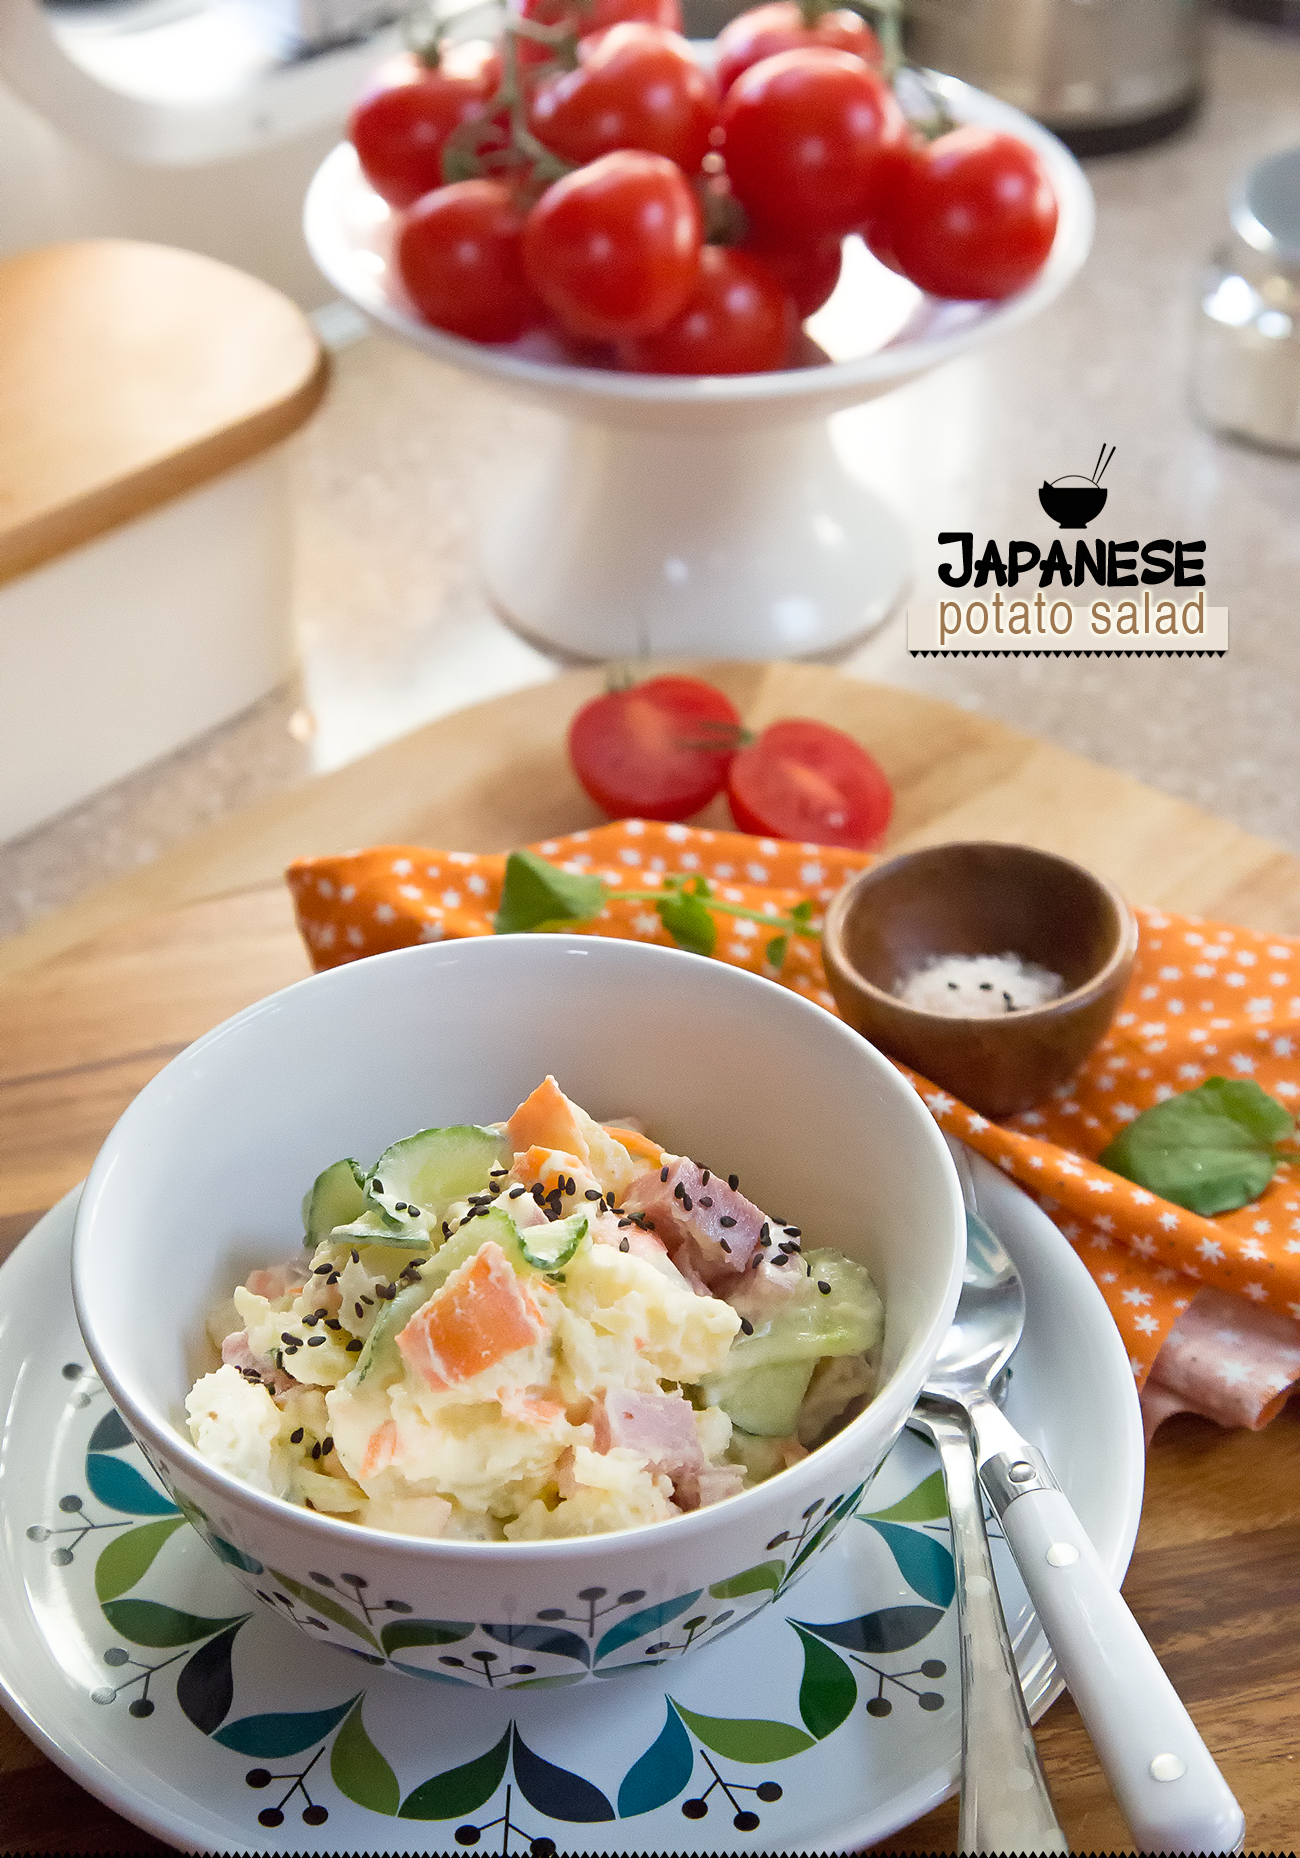 Japanese Potato Salad from my Airstream kitchen to yours